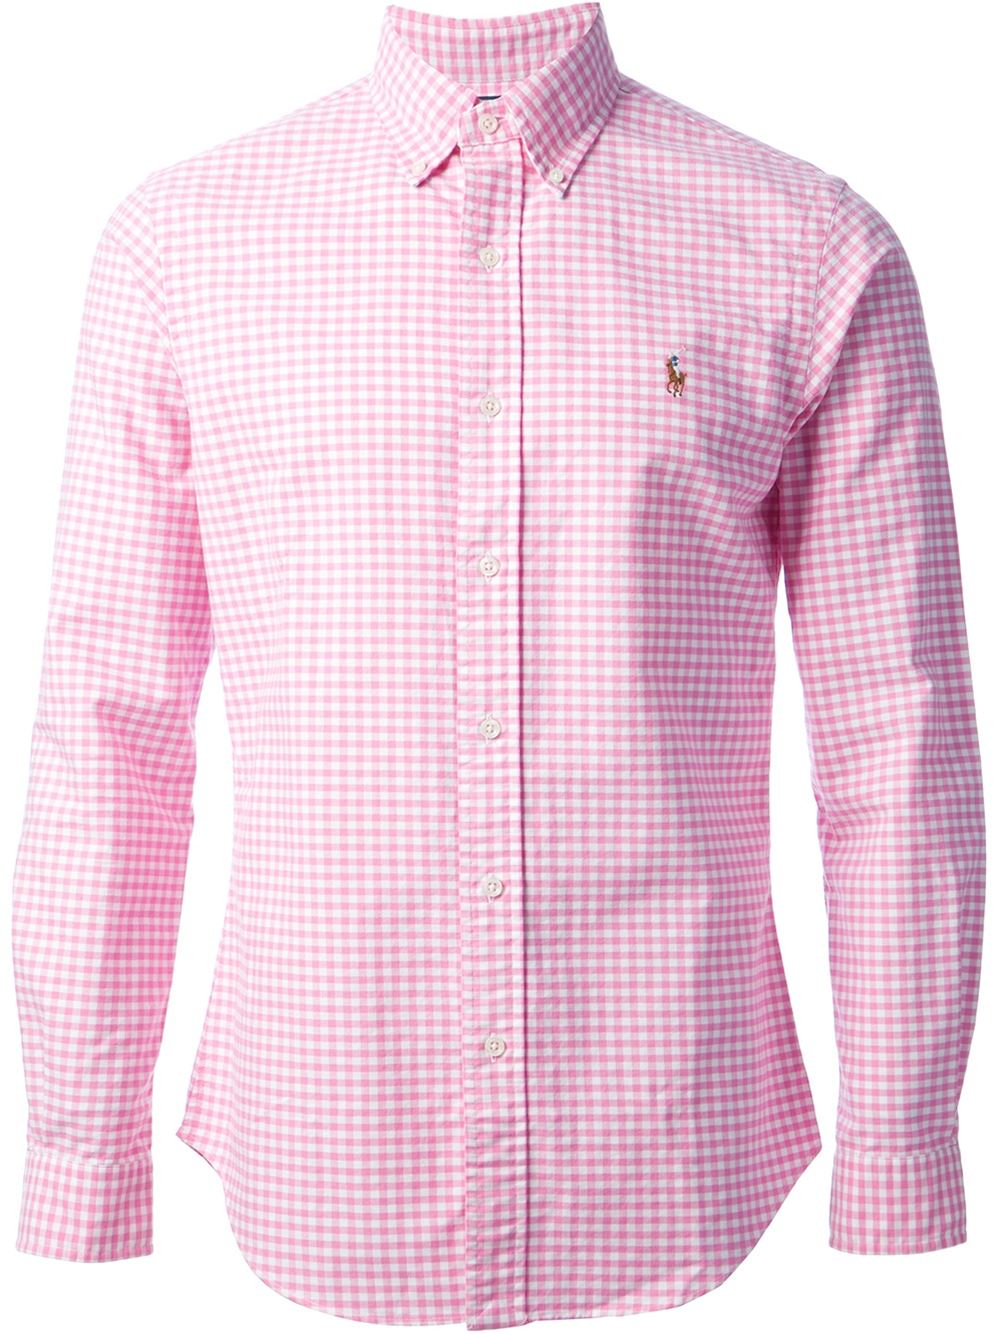 Polo Ralph Lauren Checked Shirt In Pink For Men Pink